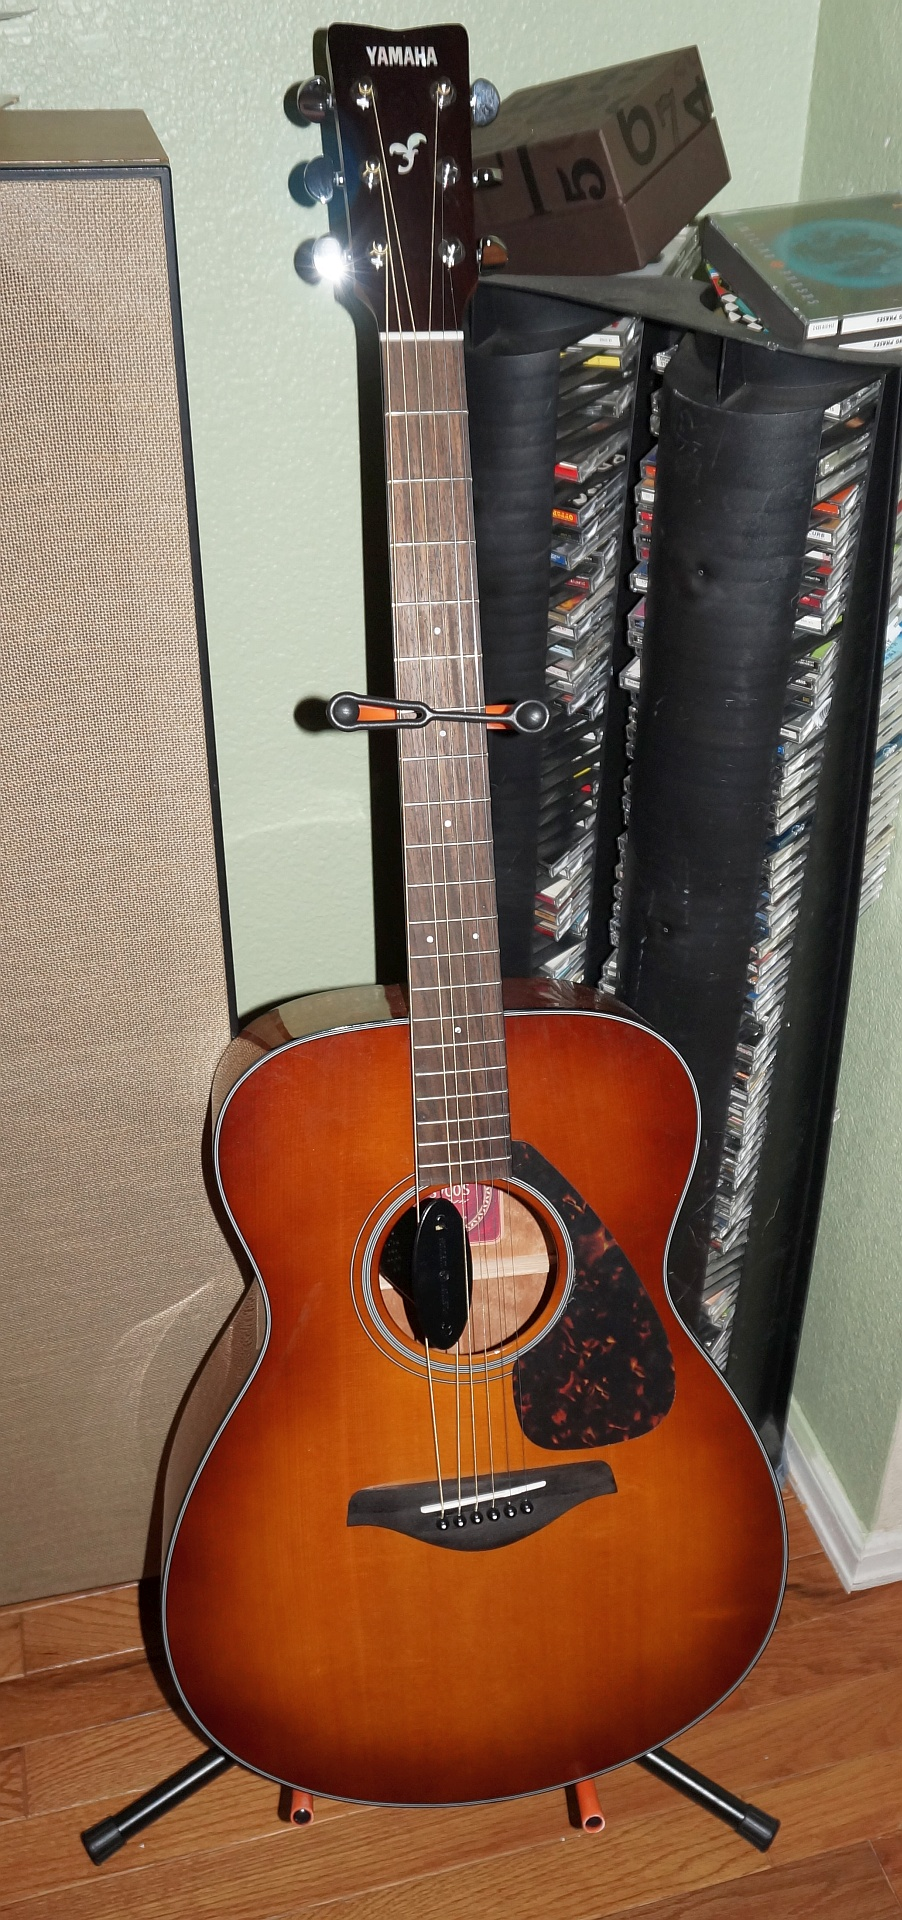 Ngd yamaha fs700s the acoustic guitar forum for Yamaha fg700s dimensions